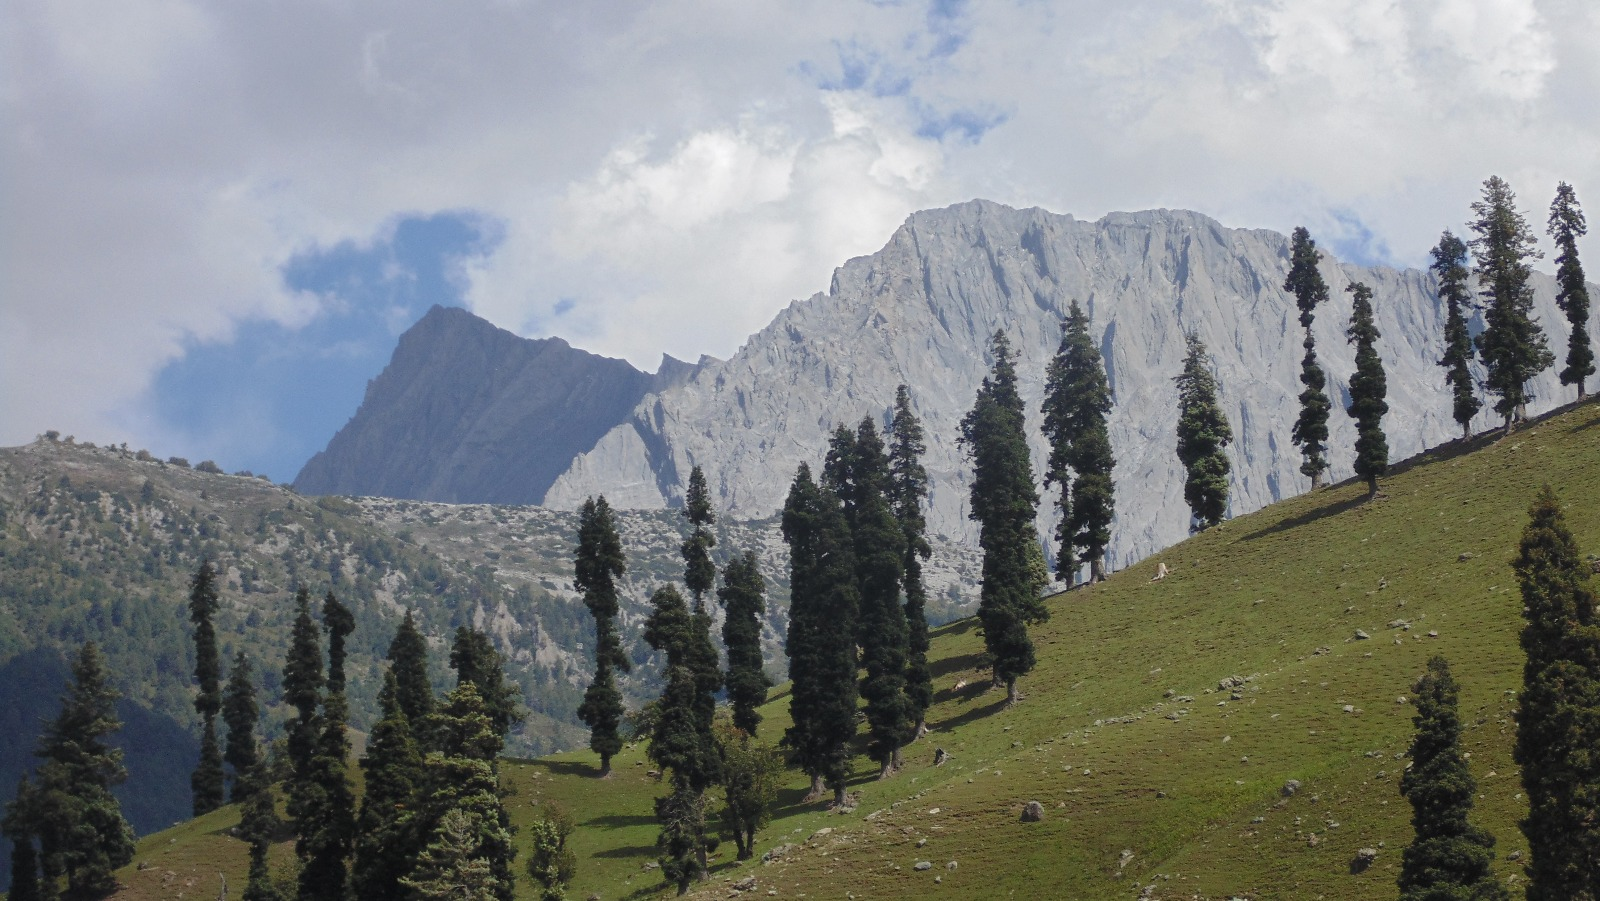 A trip to leh blog by Devleena nath day 3 Sonamarg enroute to leh